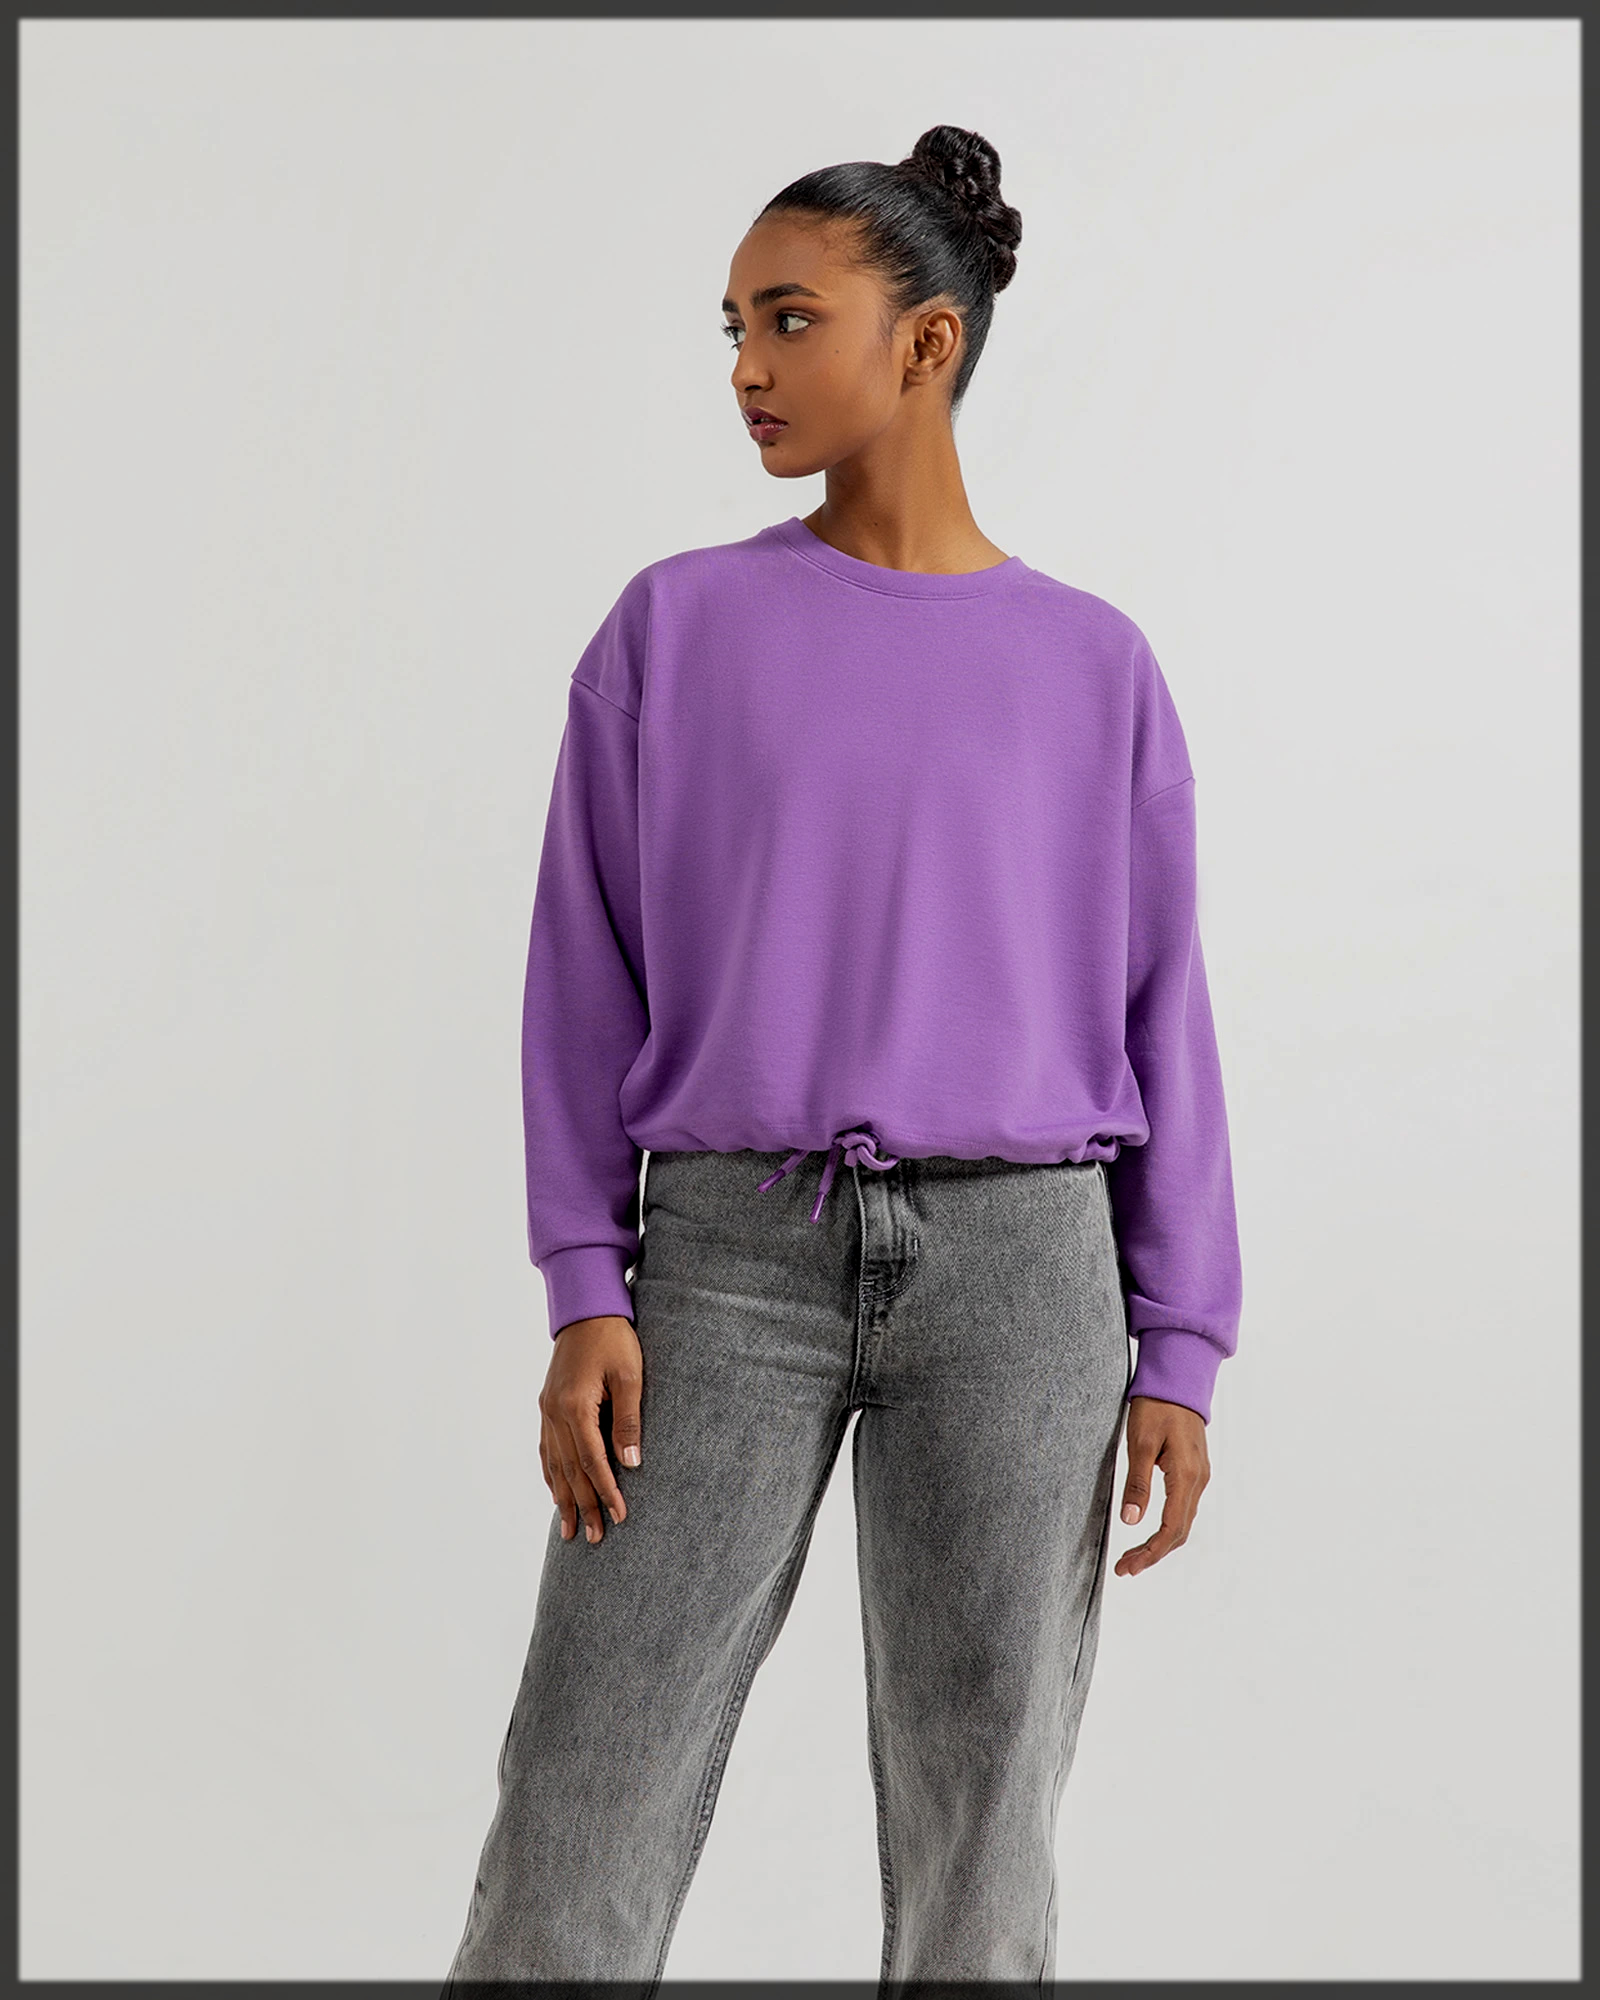 outfitters sweatshirts collection for women